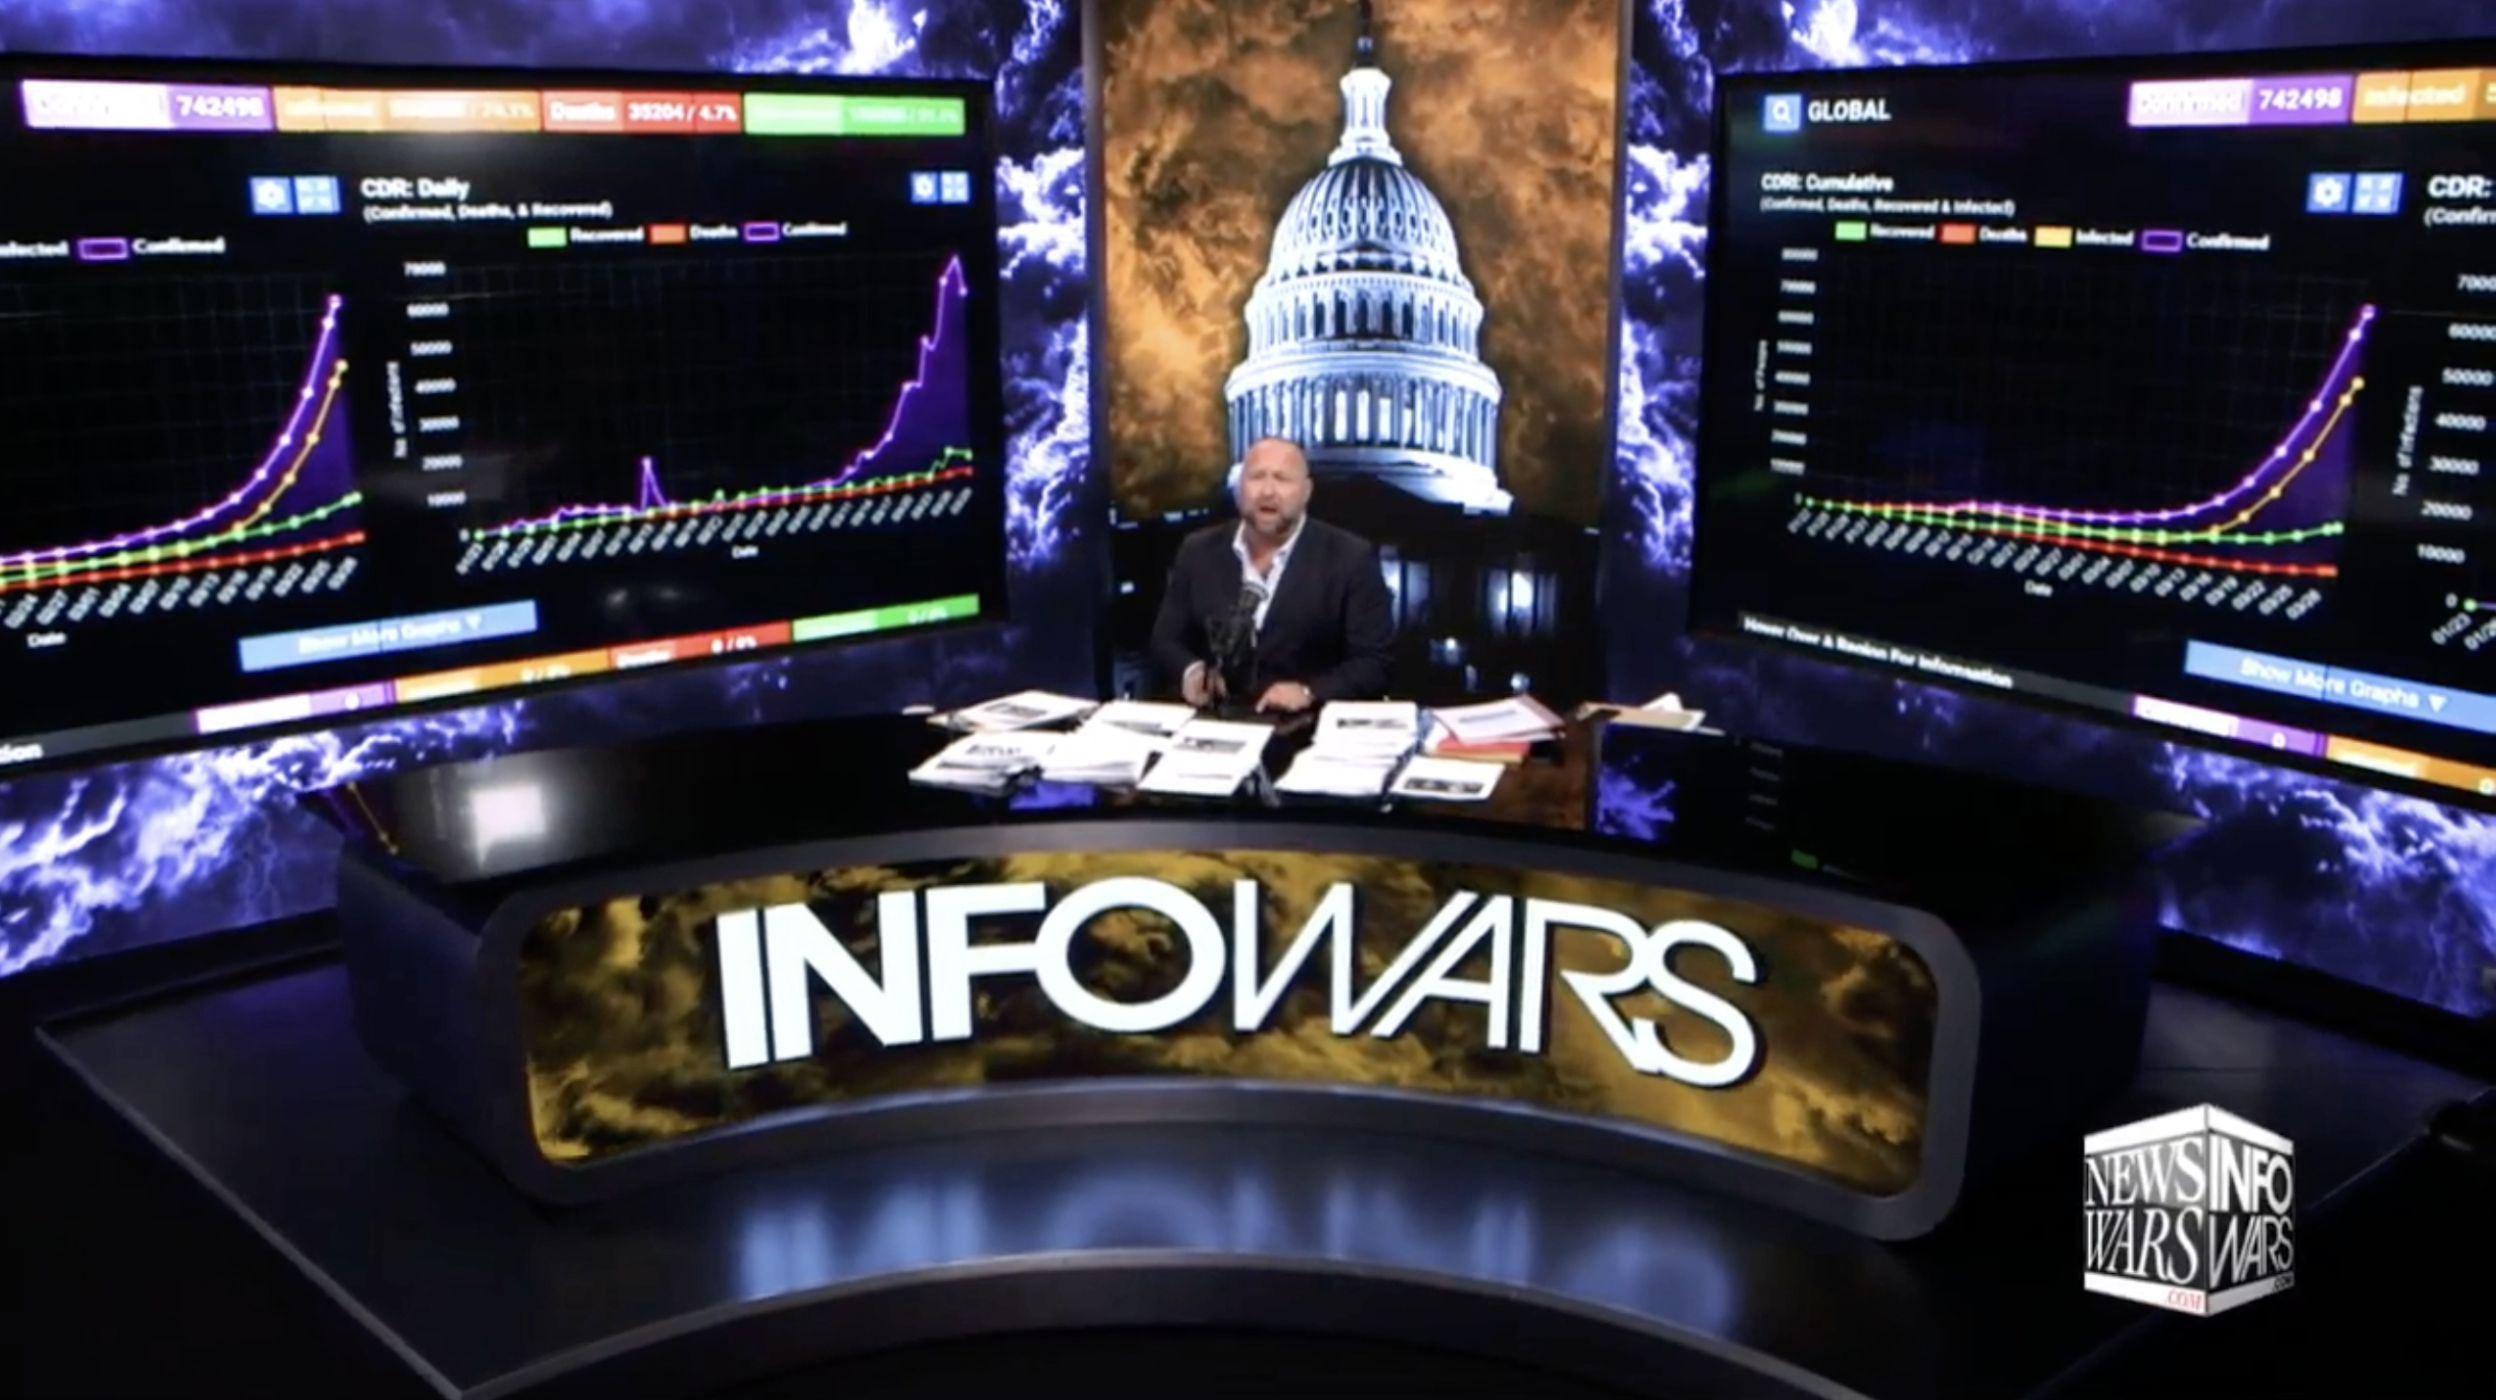 Alex Jones Infowars 3 30 2020